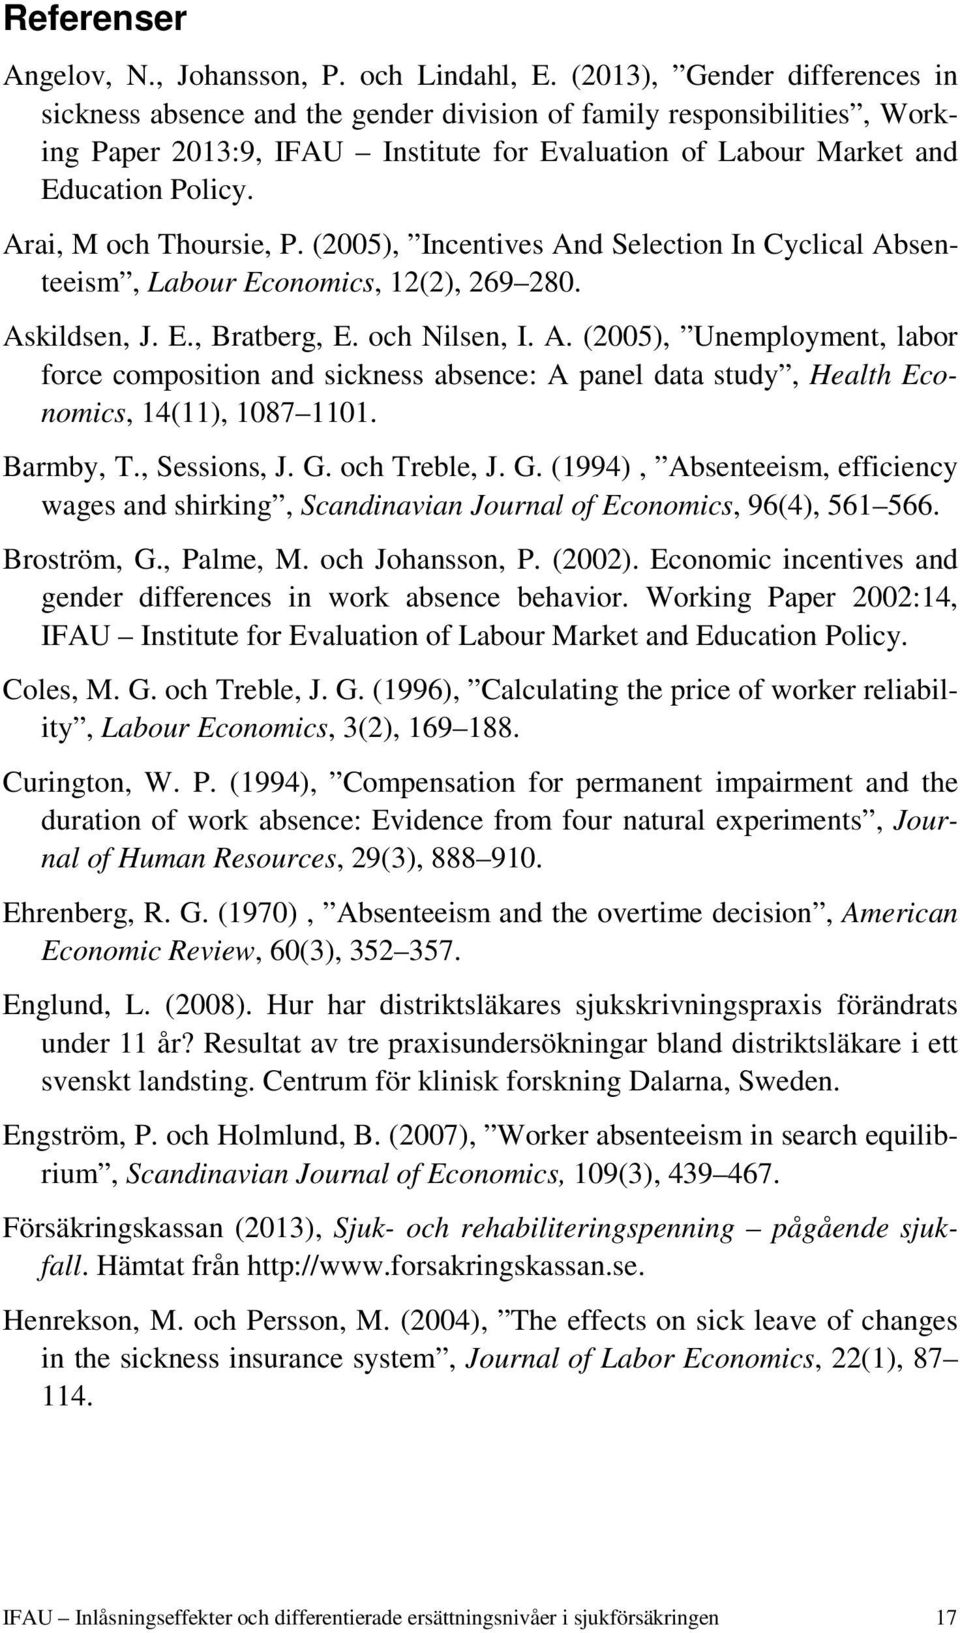 Arai, M och Thoursie, P. (2005), Incentives And Selection In Cyclical Absenteeism, Labour Economics, 12(2), 269 280. Askildsen, J. E., Bratberg, E. och Nilsen, I. A. (2005), Unemployment, labor force composition and sickness absence: A panel data study, Health Economics, 14(11), 1087 1101.